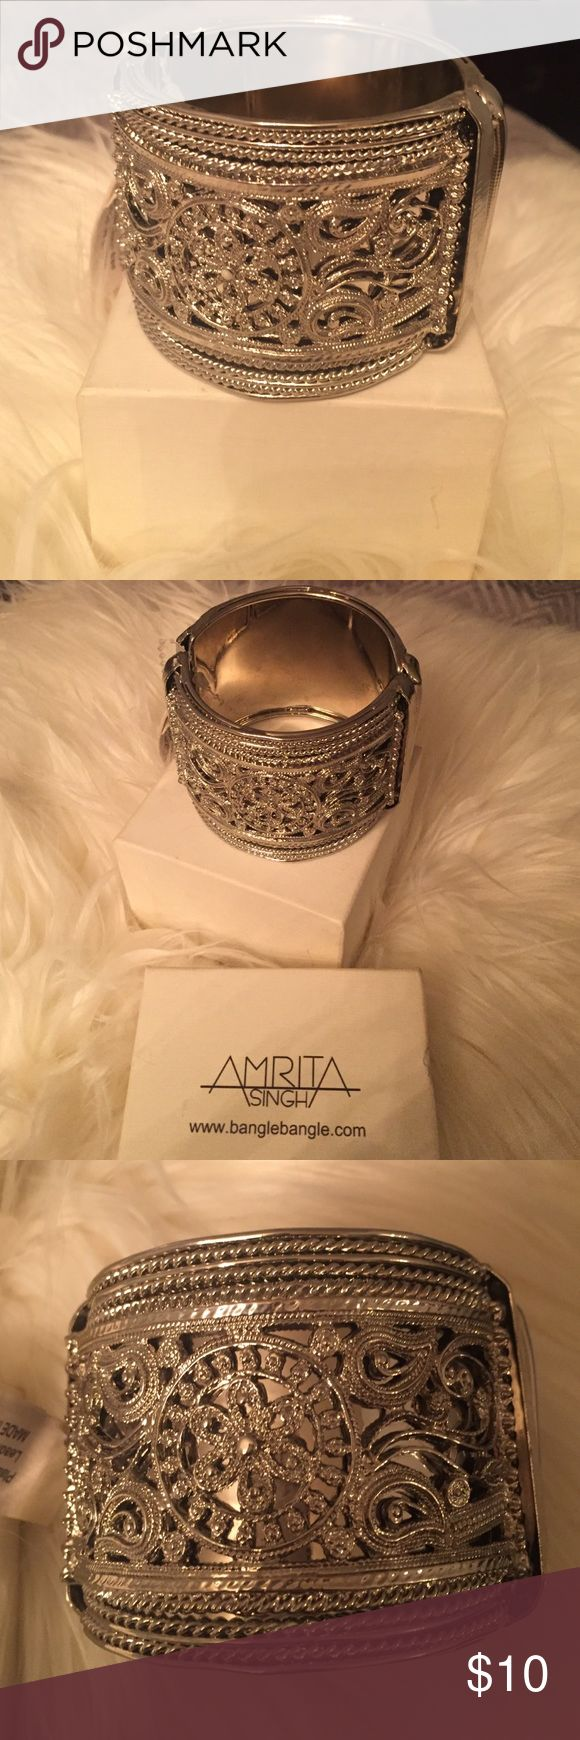 Amrita Singh cuff Beautiful new and unworn Amrita Singh cuff with tag and box. Plating color listed as silver. Lead and nickle free. Amrita Singh Accessories